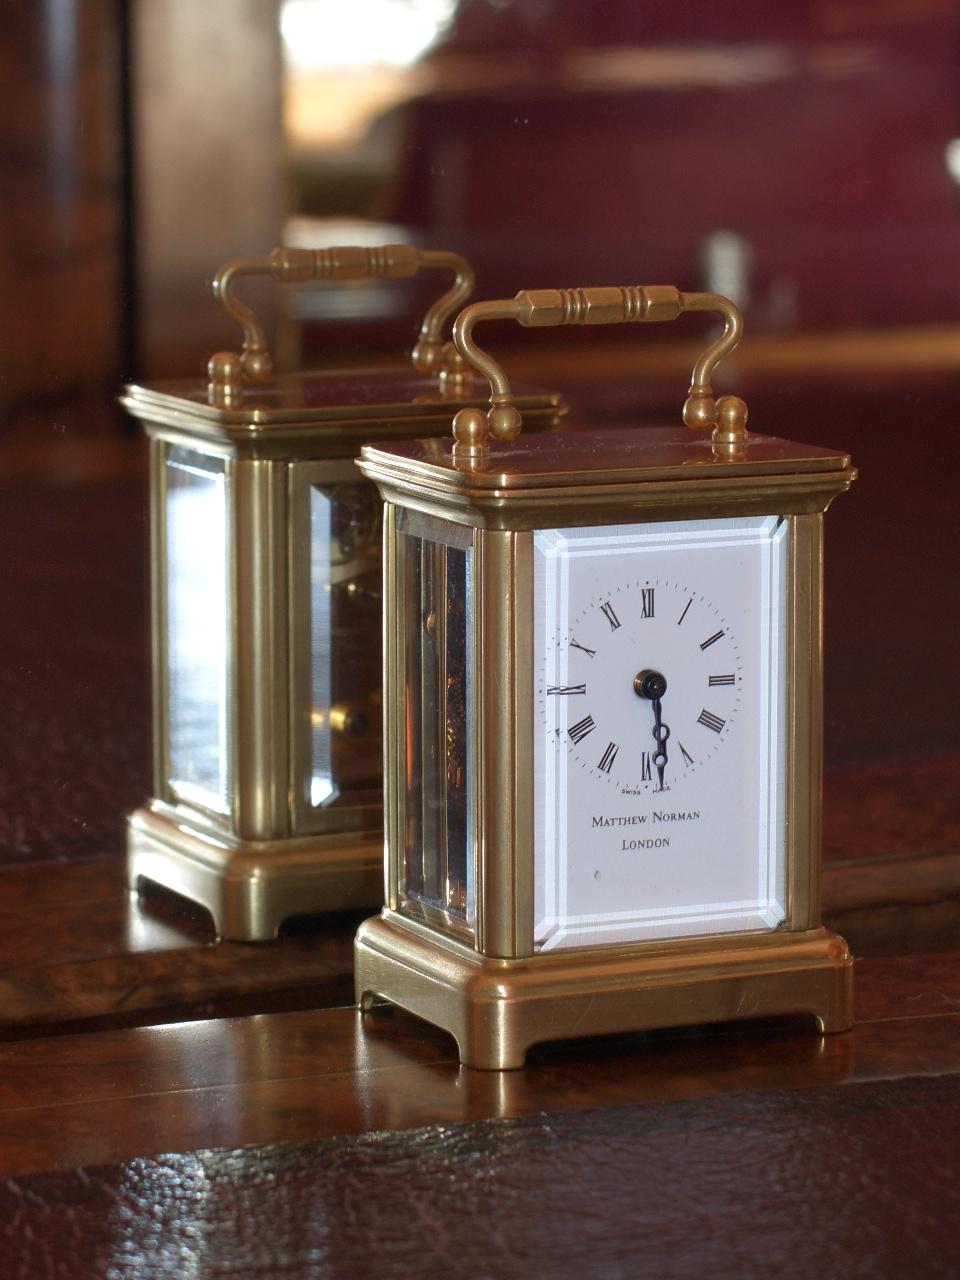 Matthew Norman miniature carriage clock